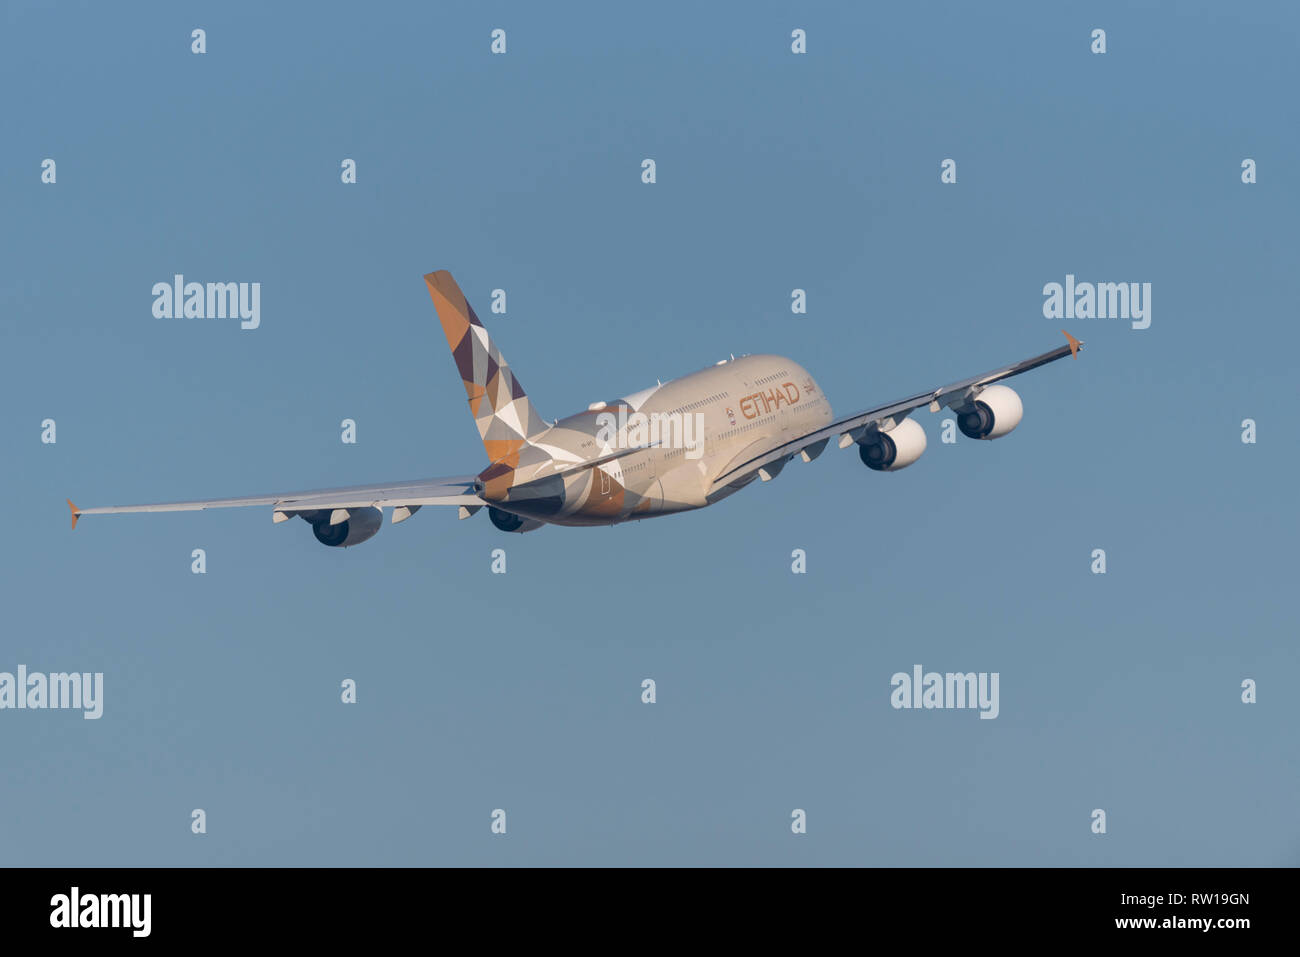 Etihad Airways Airbus A380 superjumbo jet airliner plane A6-APC taking off from London Heathrow Airport, UK, in blue sky. Space for copy - Stock Image